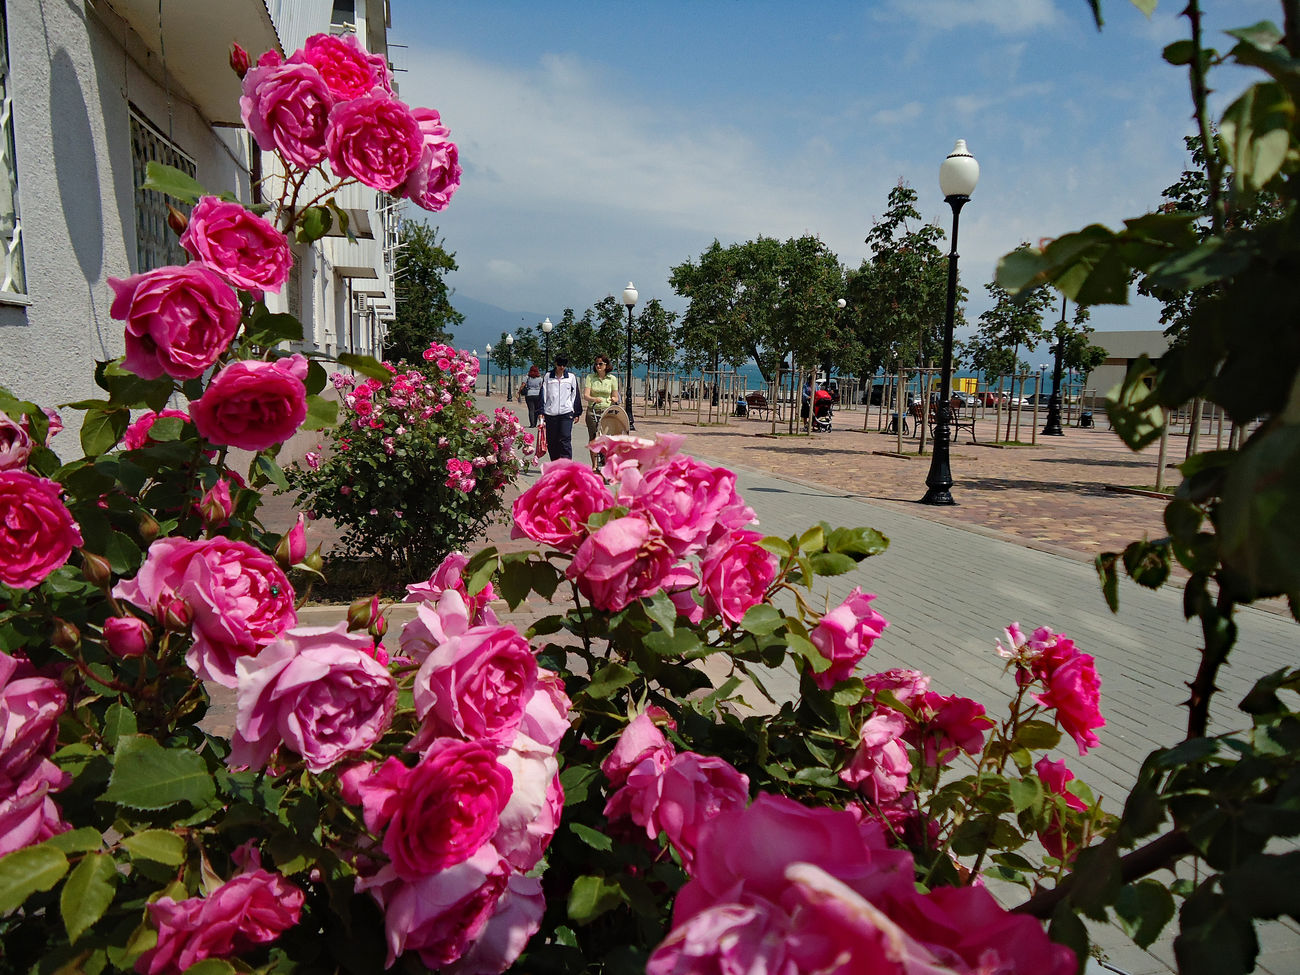 Rose frame. Alley Beautiful Blooms Exuberant Flourishing Flower Frame Flowers Foreground Focus Frame Freshness Lush May Novorossiysk Novorossiysk Roses Pink Pink Color Pink Rose Bush Quay Romantic Rose Bush Rose Frame Royal Spring Street